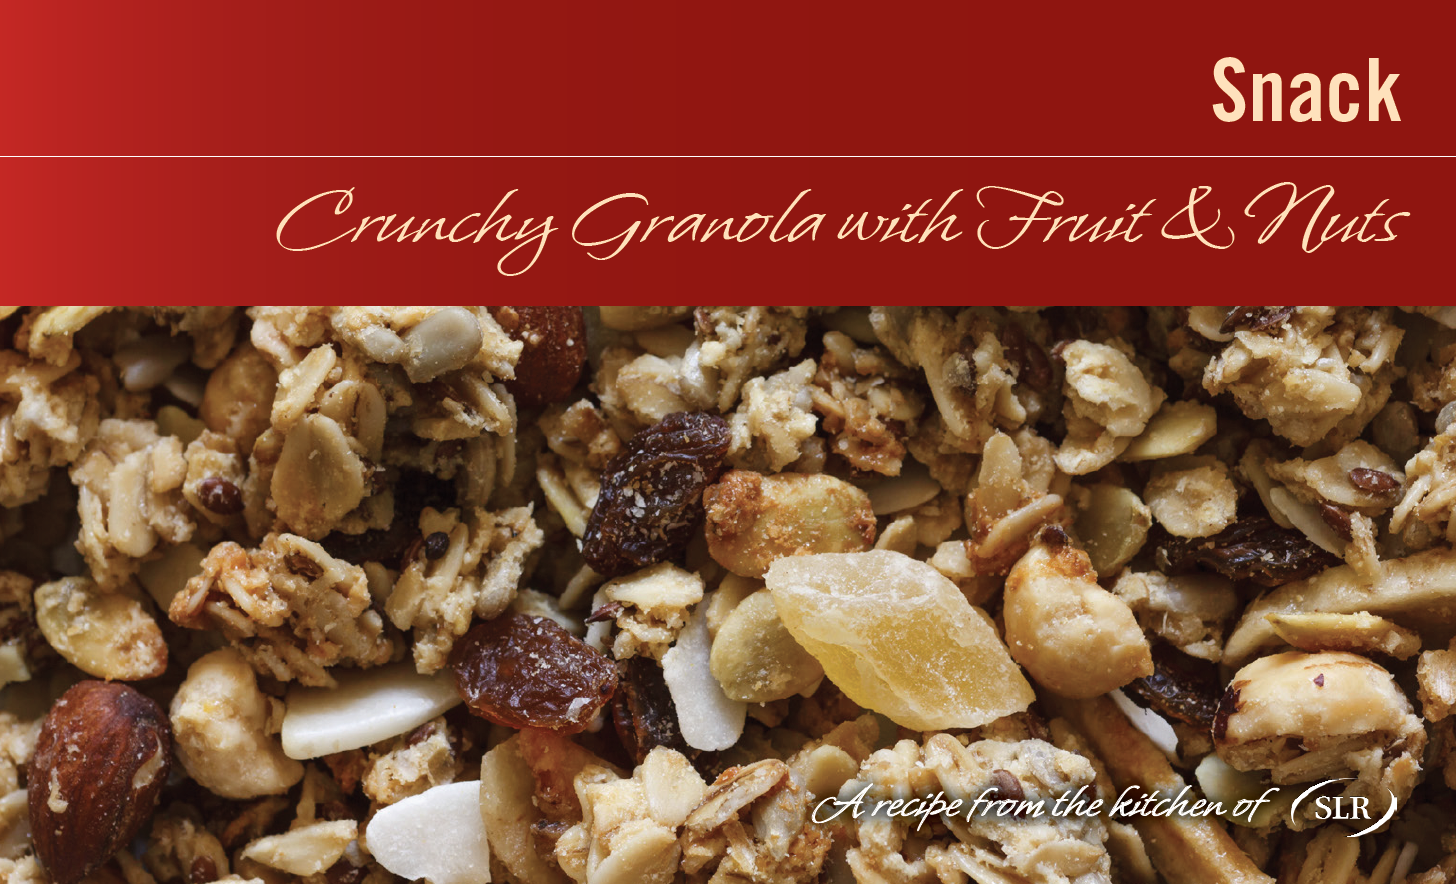 Crunchy Granola with Fruit & Nuts recipe card